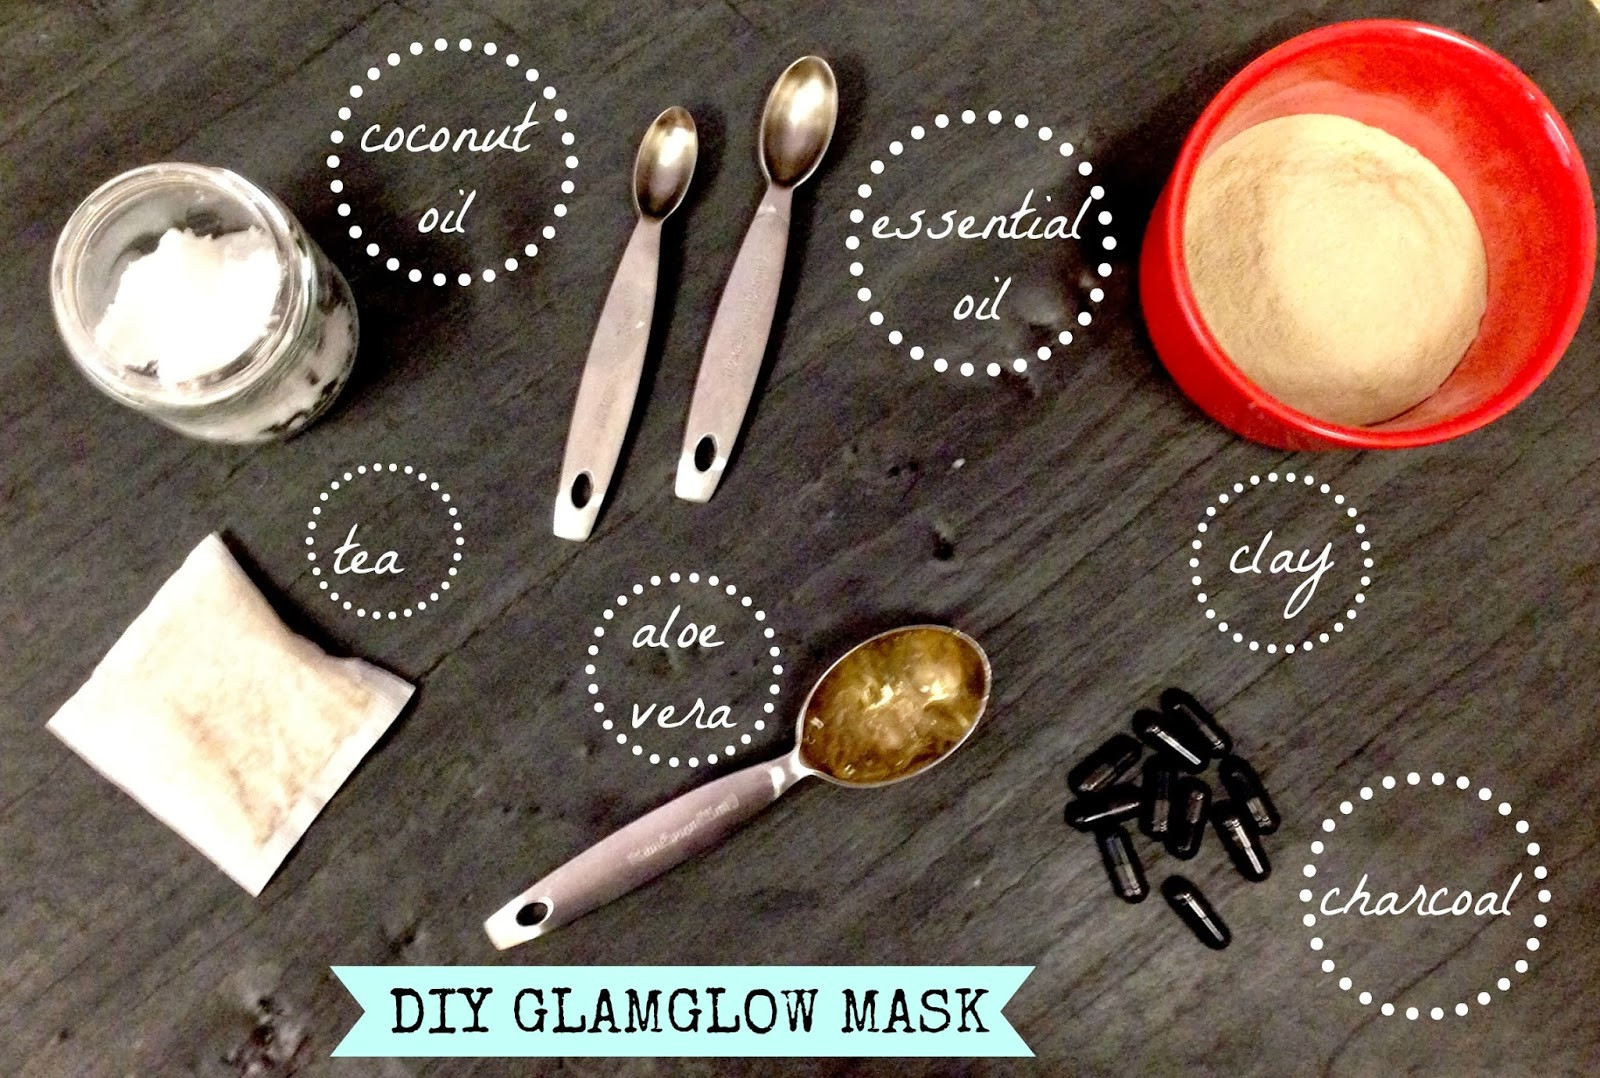 Best ideas about DIY Charcoal Mask Recipe . Save or Pin DIY GLAMGLOW FACE MASK Now.